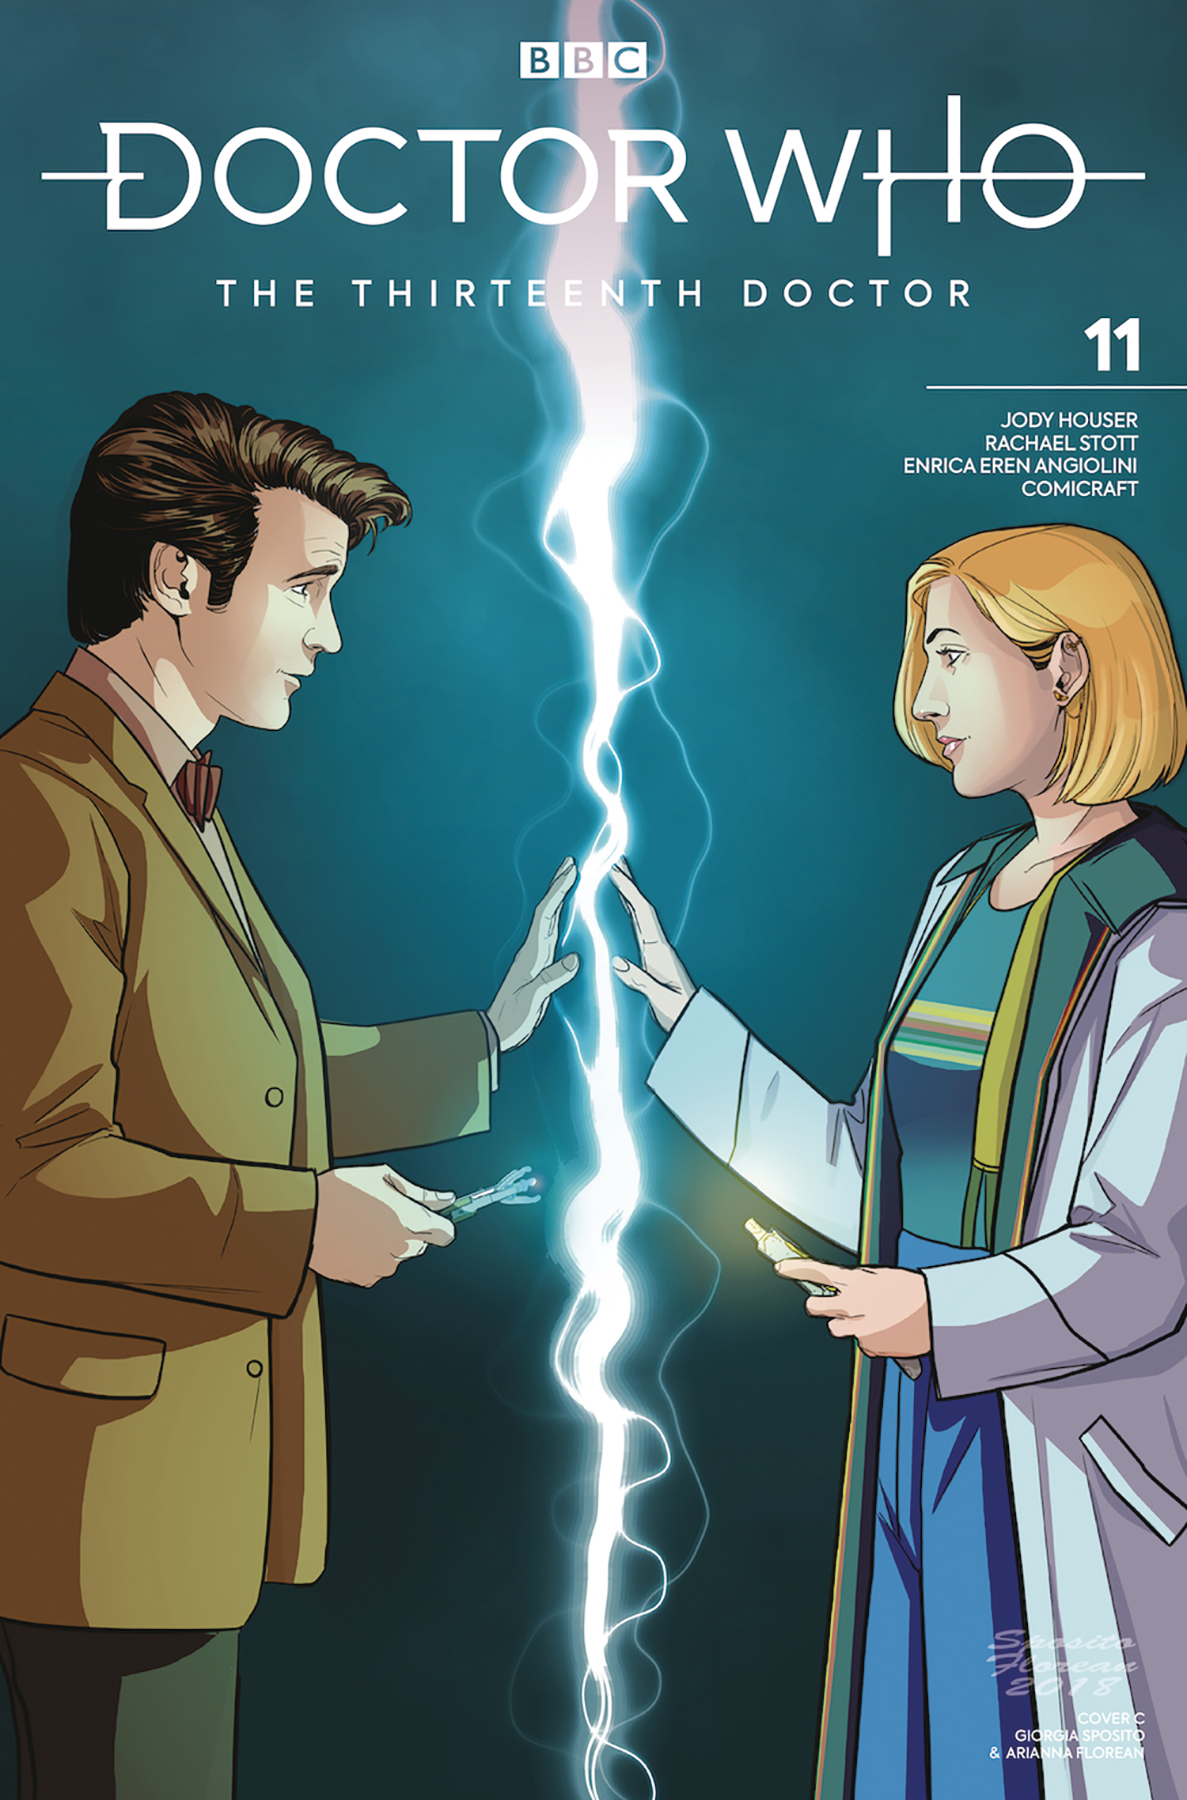 DOCTOR WHO 13TH #11 CVR C 11TH DOCTOR